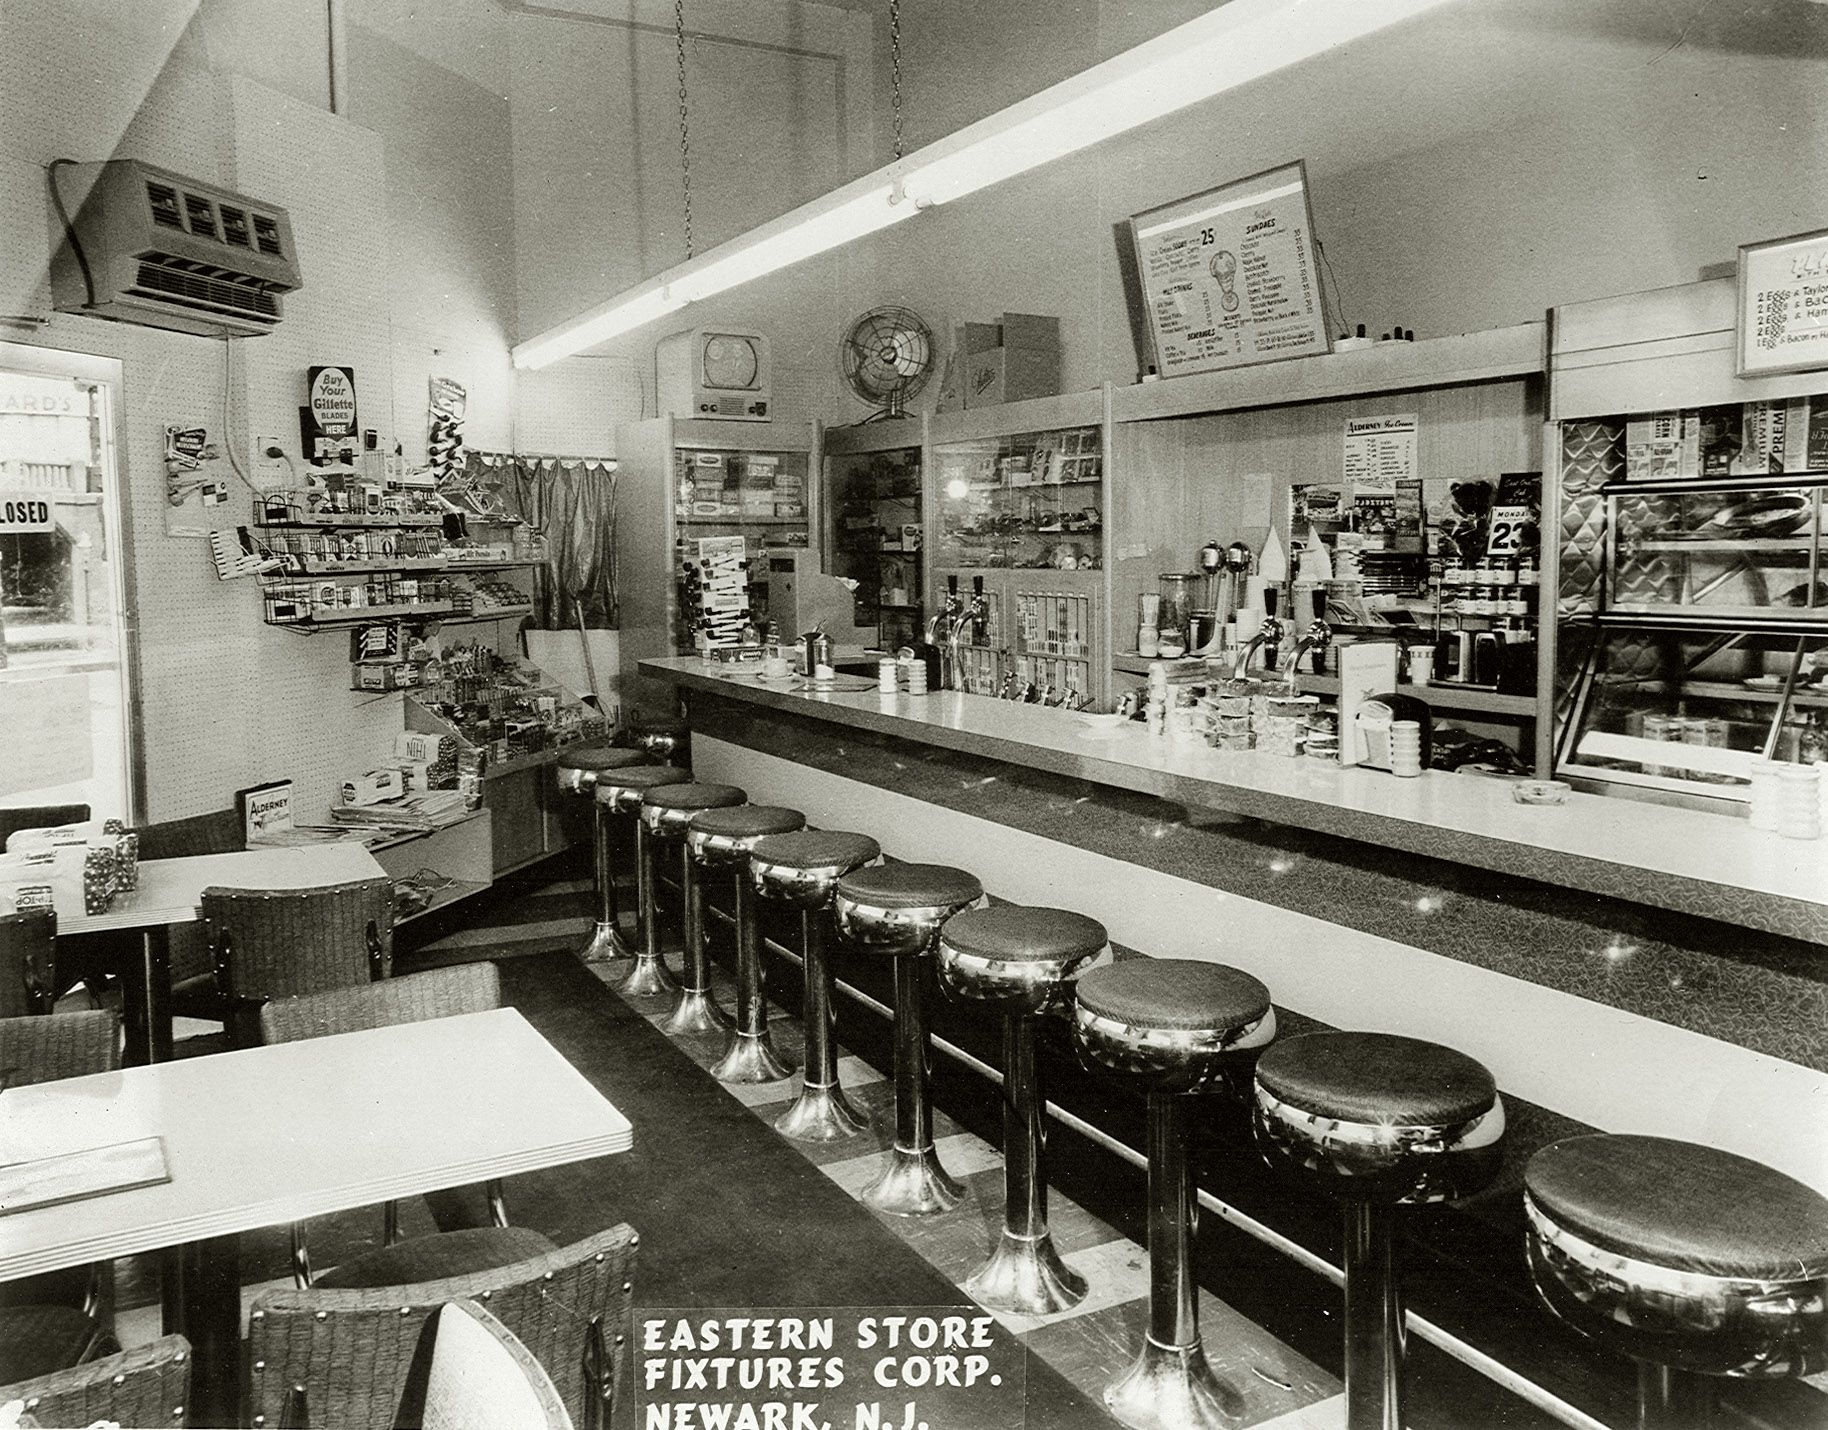 A New Jersey Lunch Counter And Soda Fountain Circa 1950